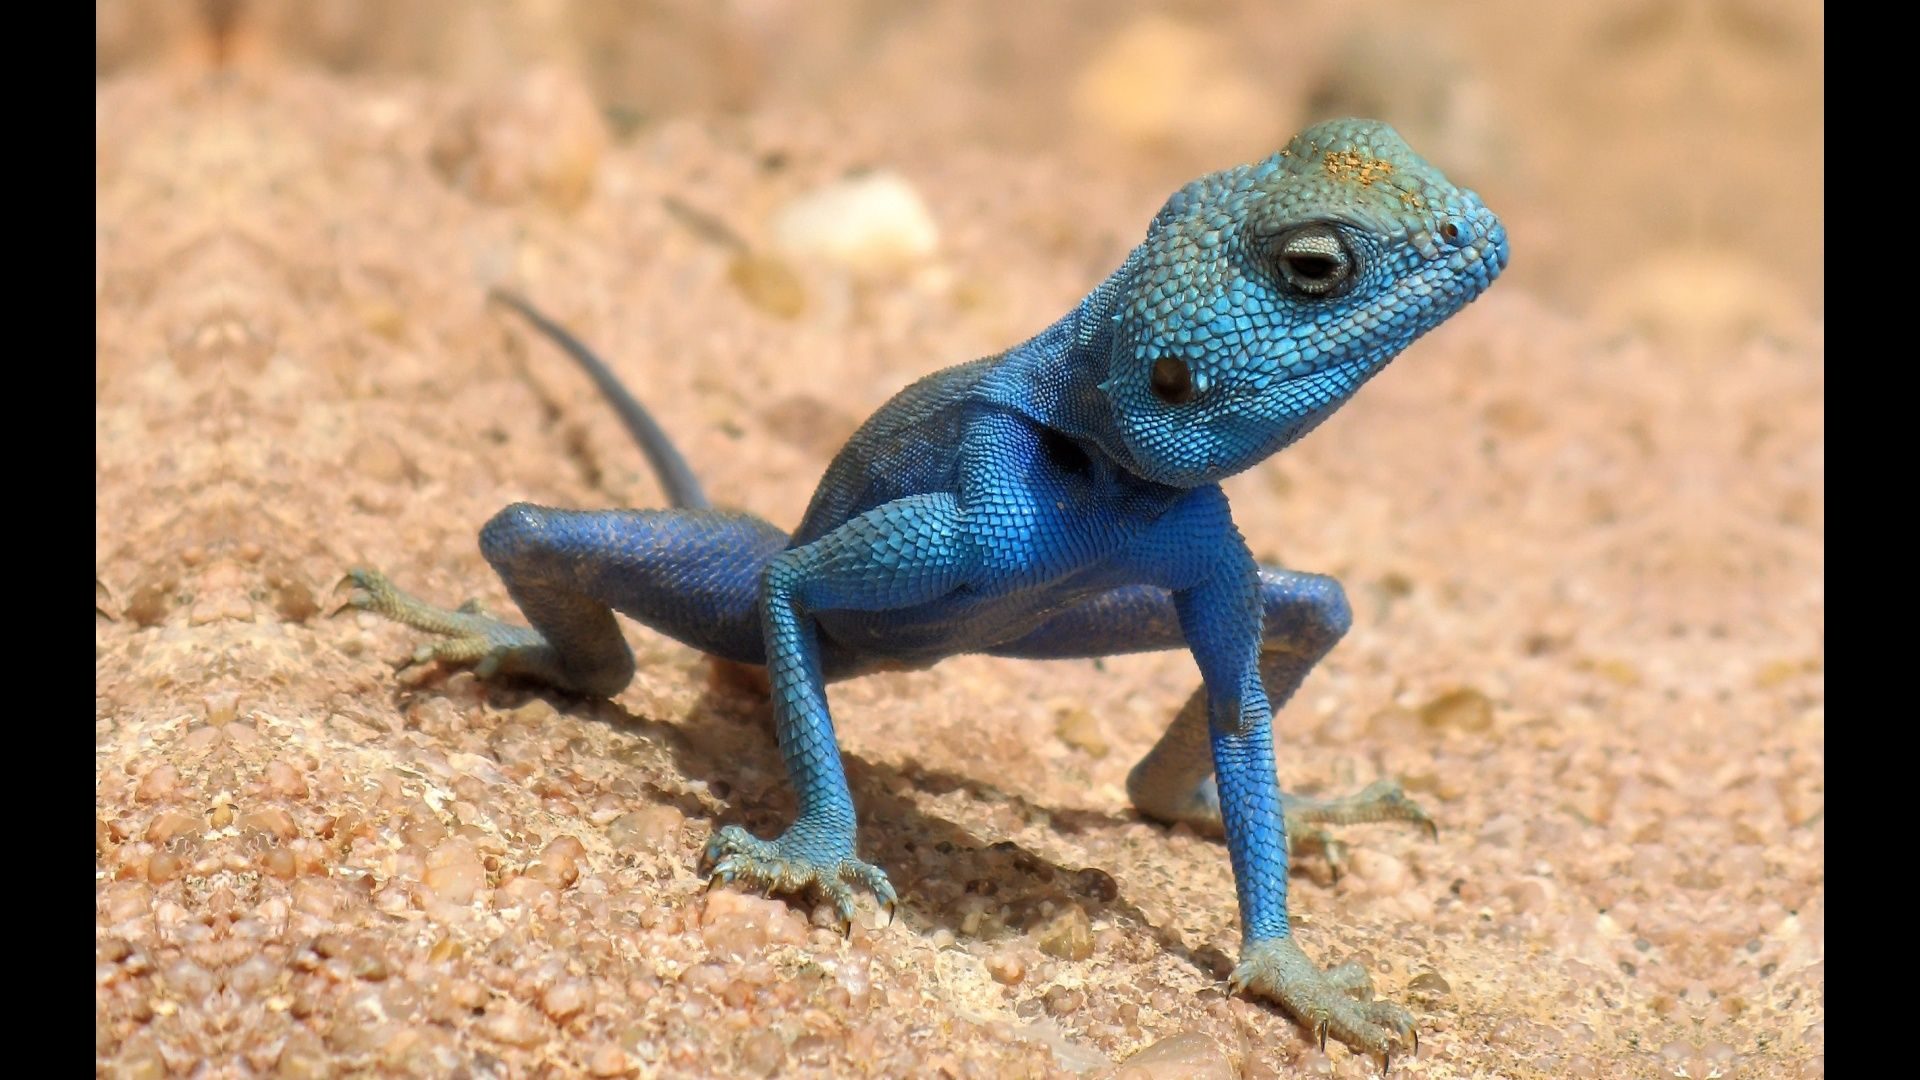 A Blue Lizard Sinai Agama Looking Around On The Ground